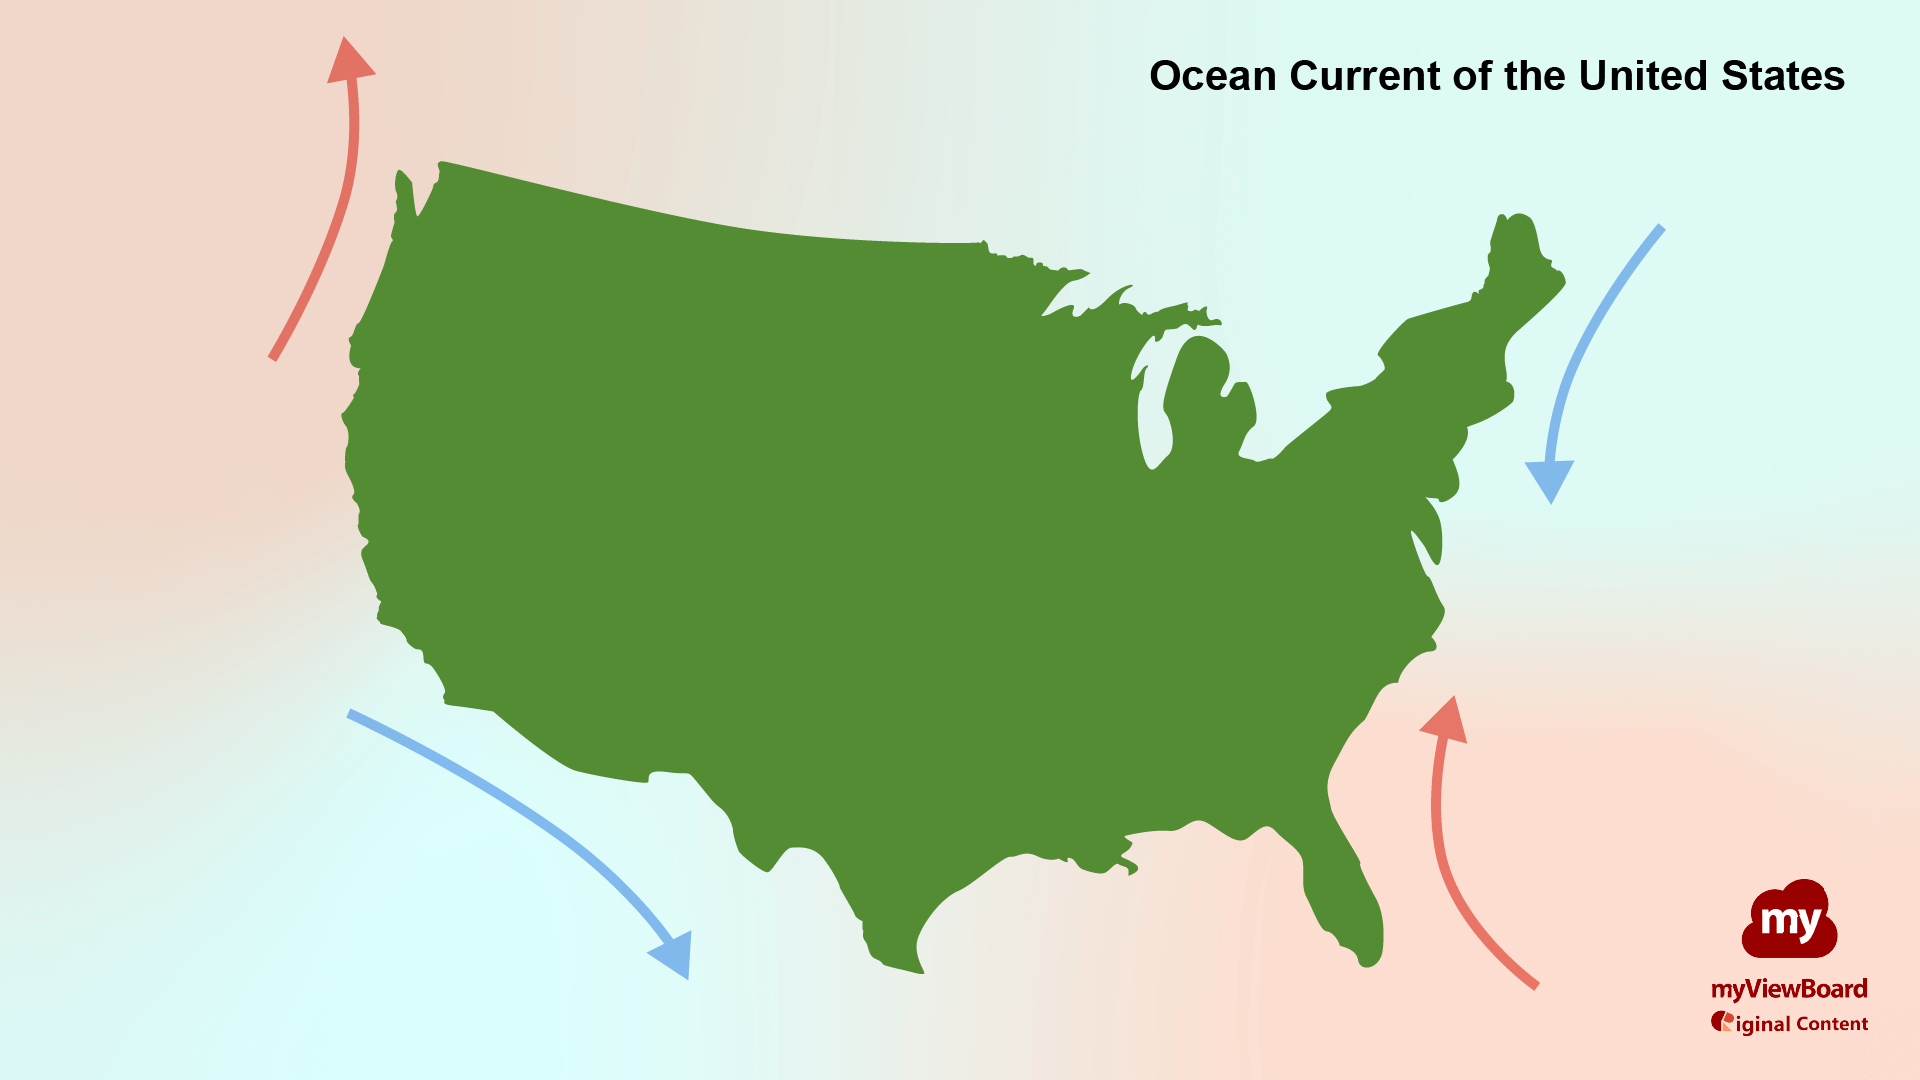 BG Ocean Current of the United States logo Full HD.png